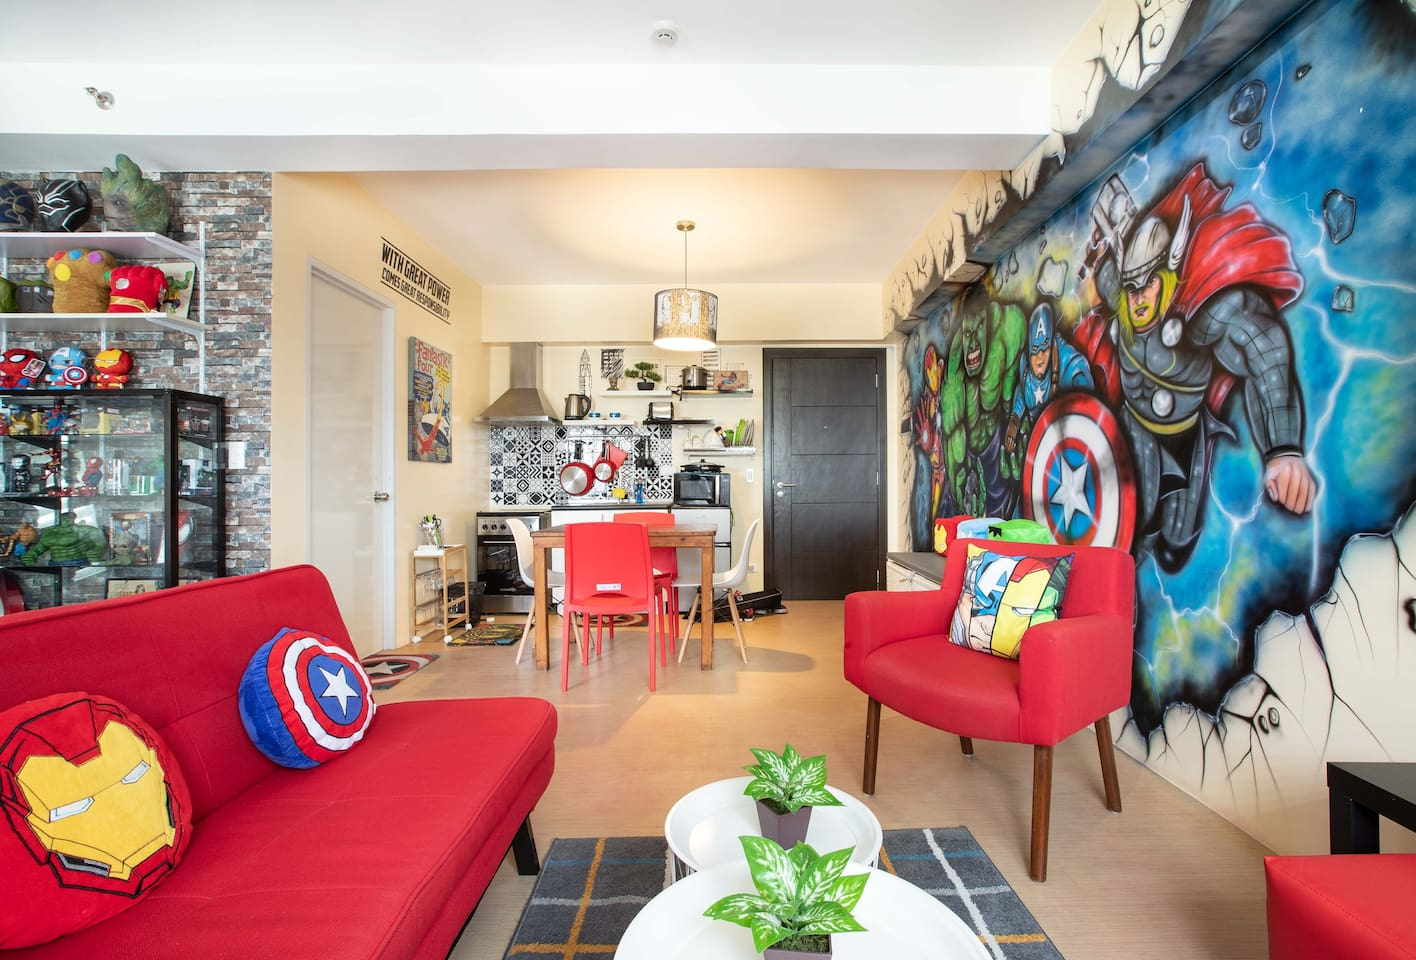 Our Marvel-inspired AirBnB unit in BGC is a bright and sunny studio with a black, white and red theme. The beautiful colors of Marvel items and artwork pop out in this well-designed space.